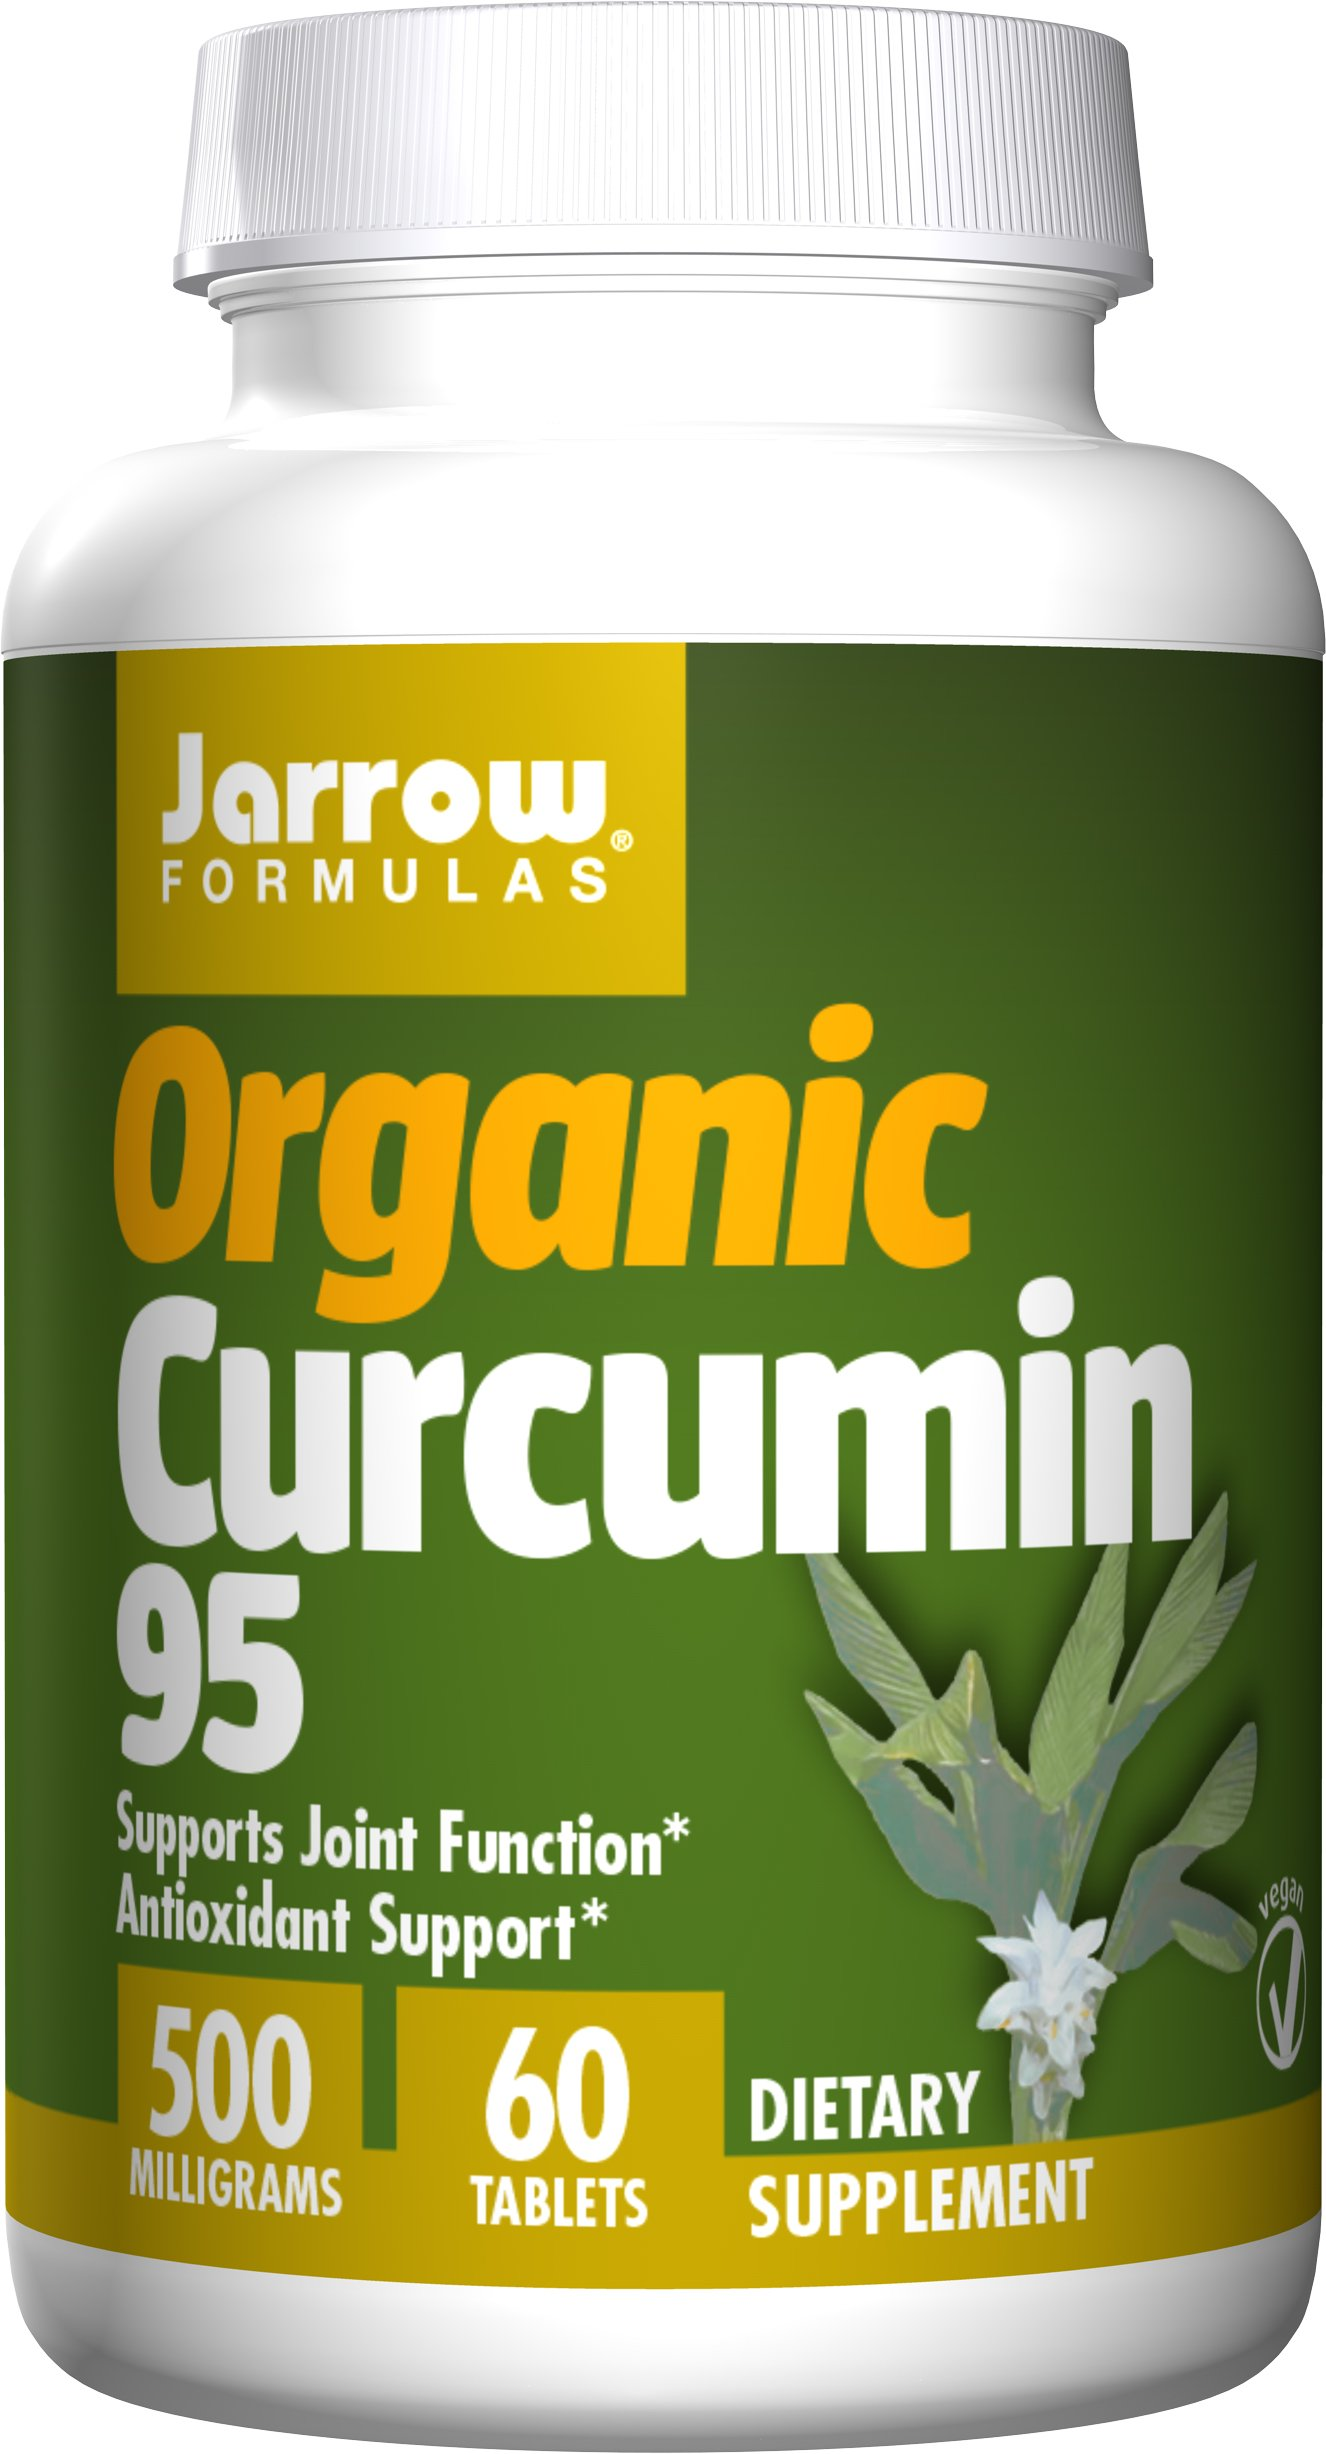 Jarrow Formulas Organic Curcumin 95, Turmeric Antioxidant Support 500 mg Tablets, 60 Count